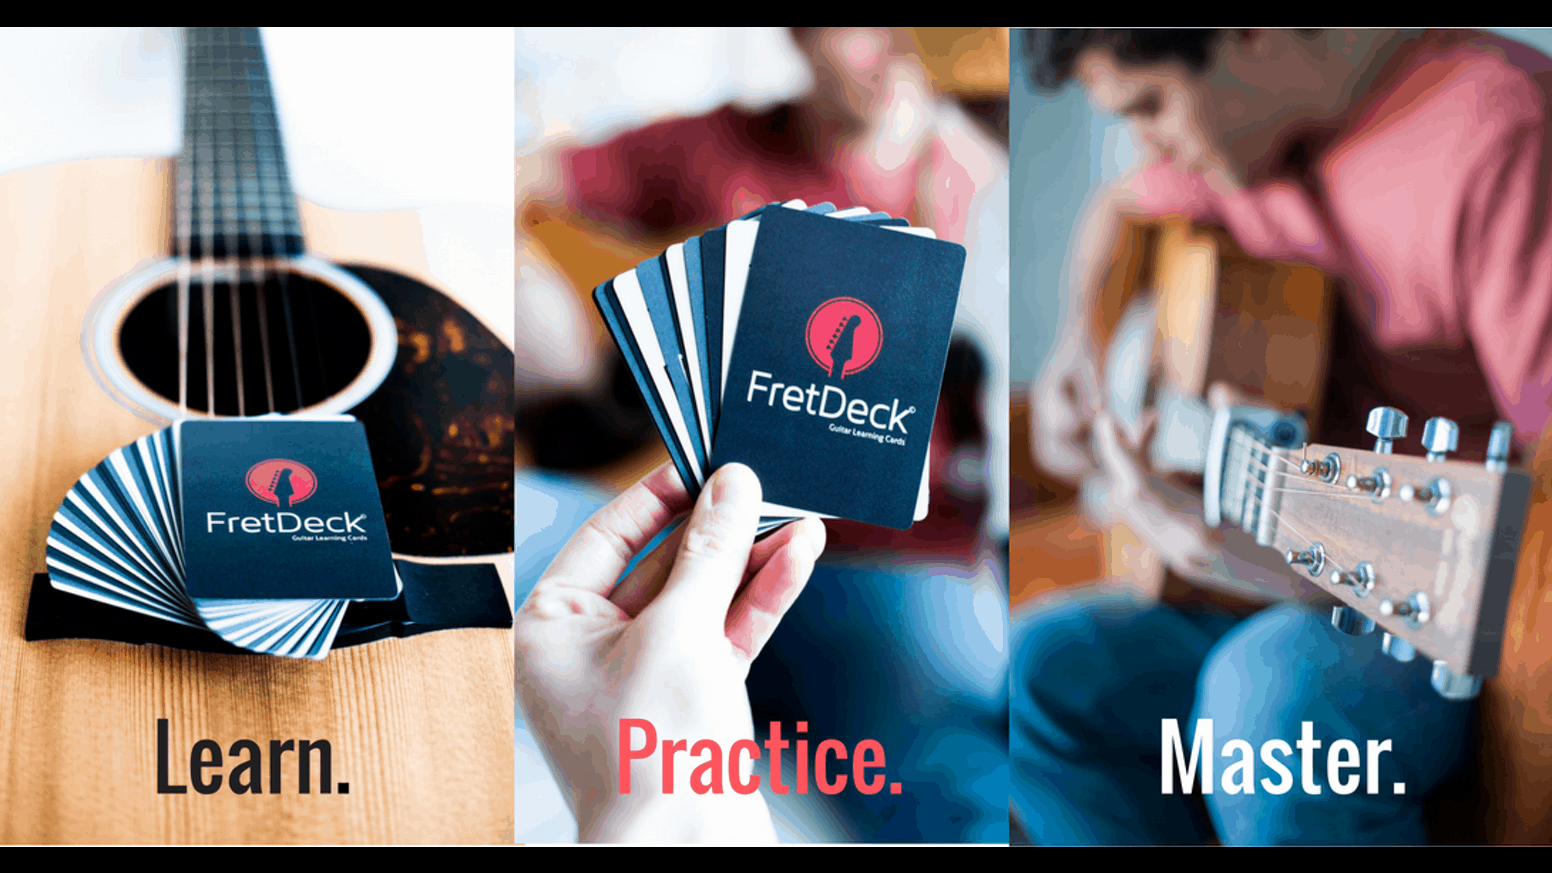 Learning Cards: Learn,Practice,Master